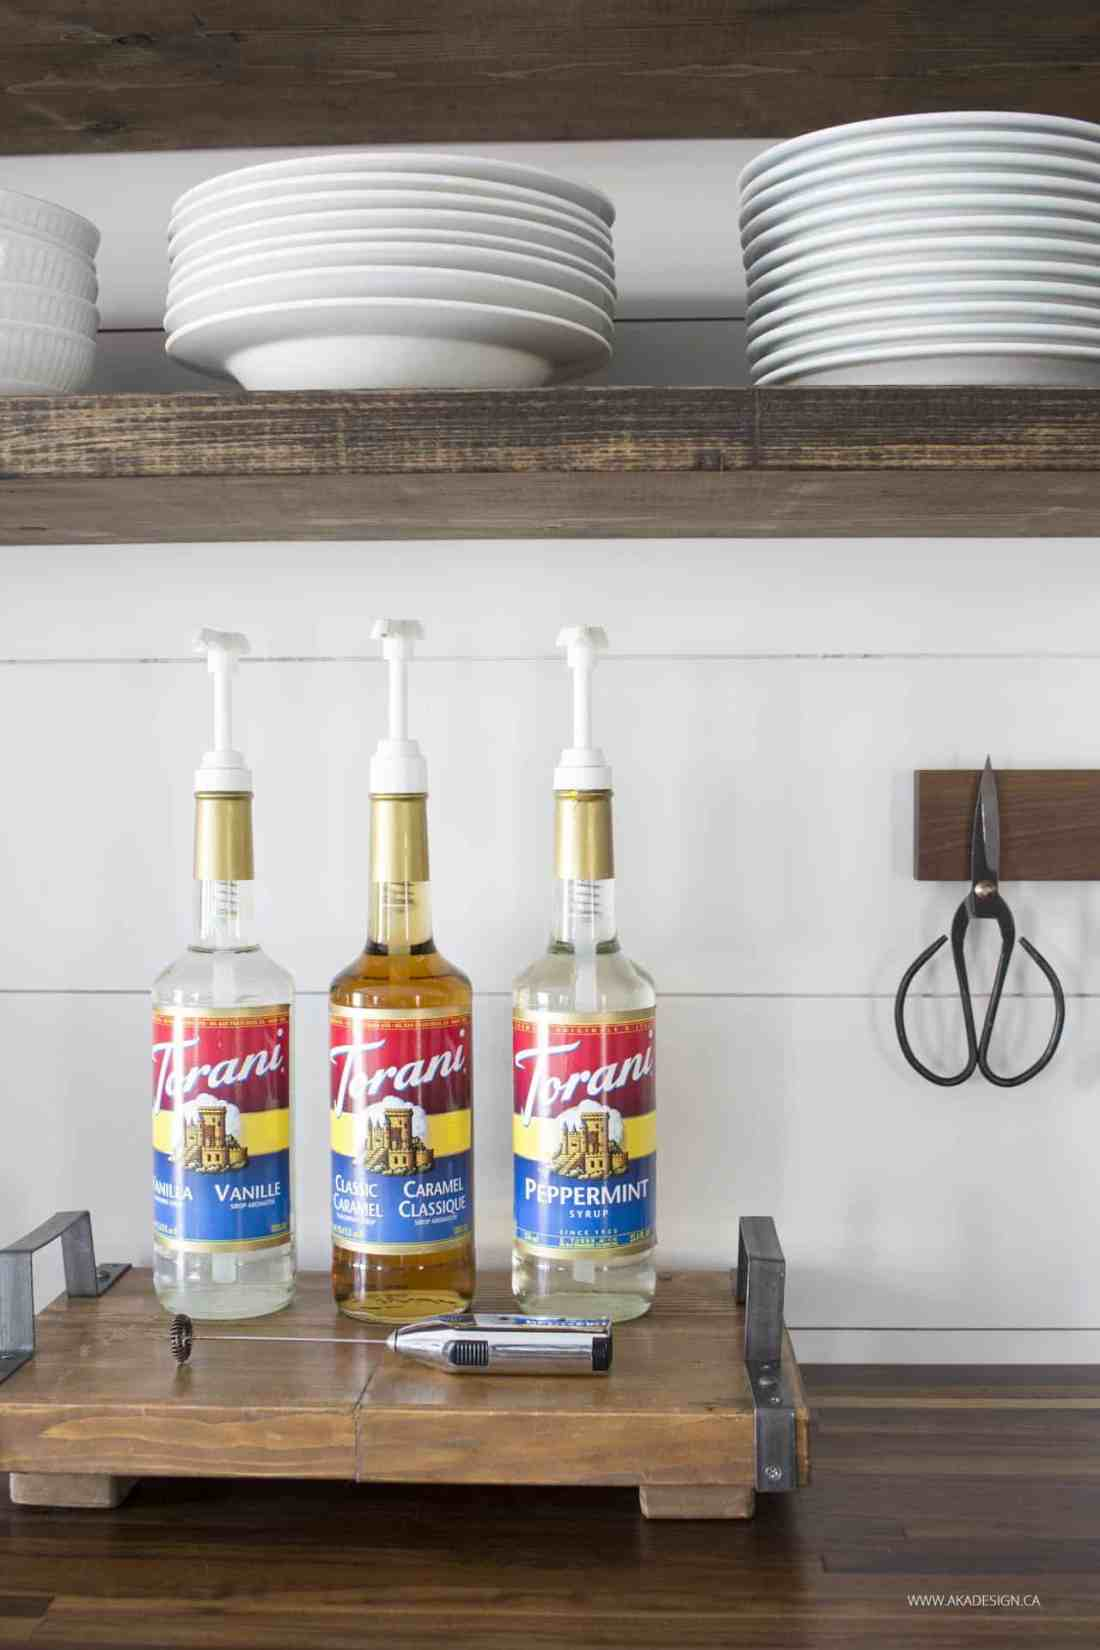 torani coffee syrups on a tray in farmhouse kitchen